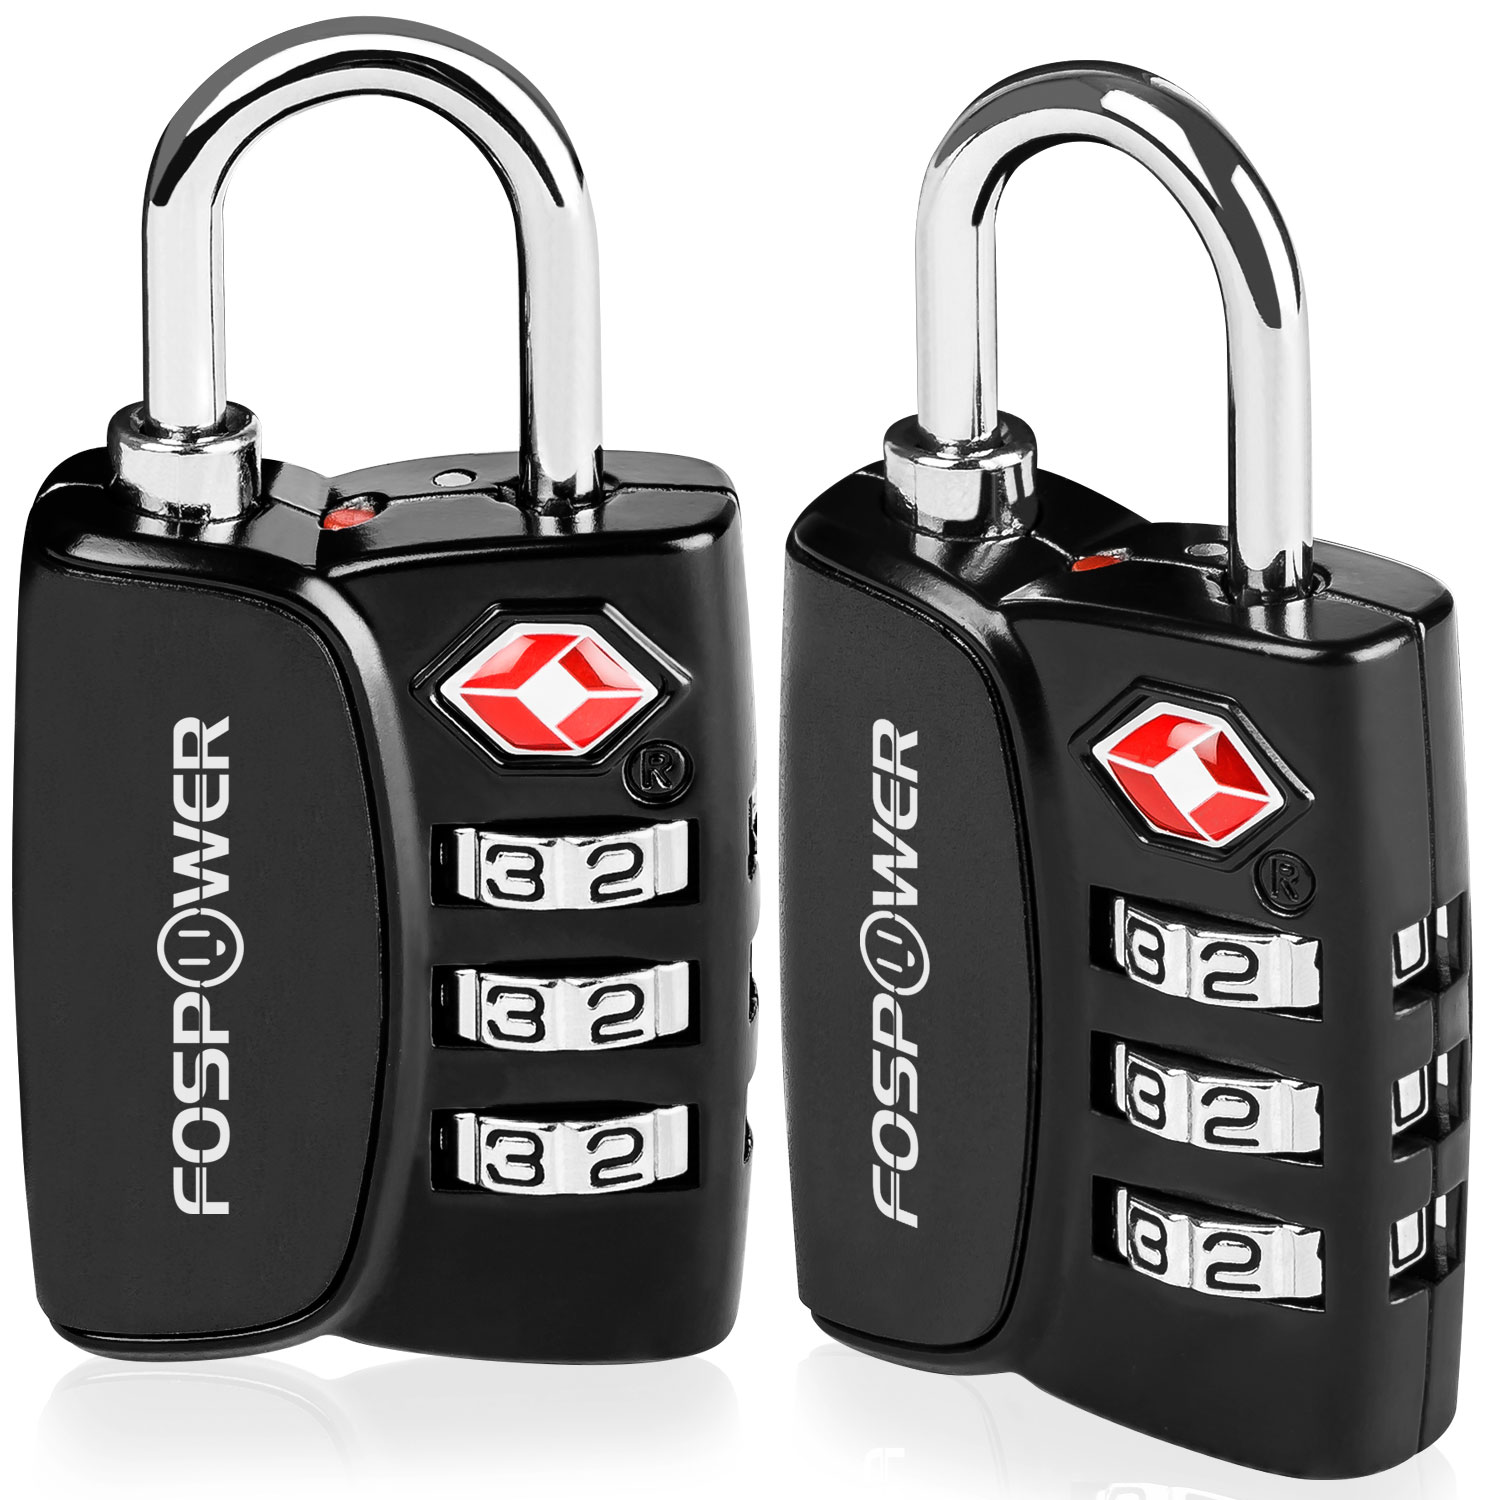 Luggage Locks TSA Approved, FosPower (2 Pack) Open Alert Indicator 3 Digit Combination Padlock with Alloy Body for Travel Bag, Suitcase, Lockers, Gym, Bike Locks or Other